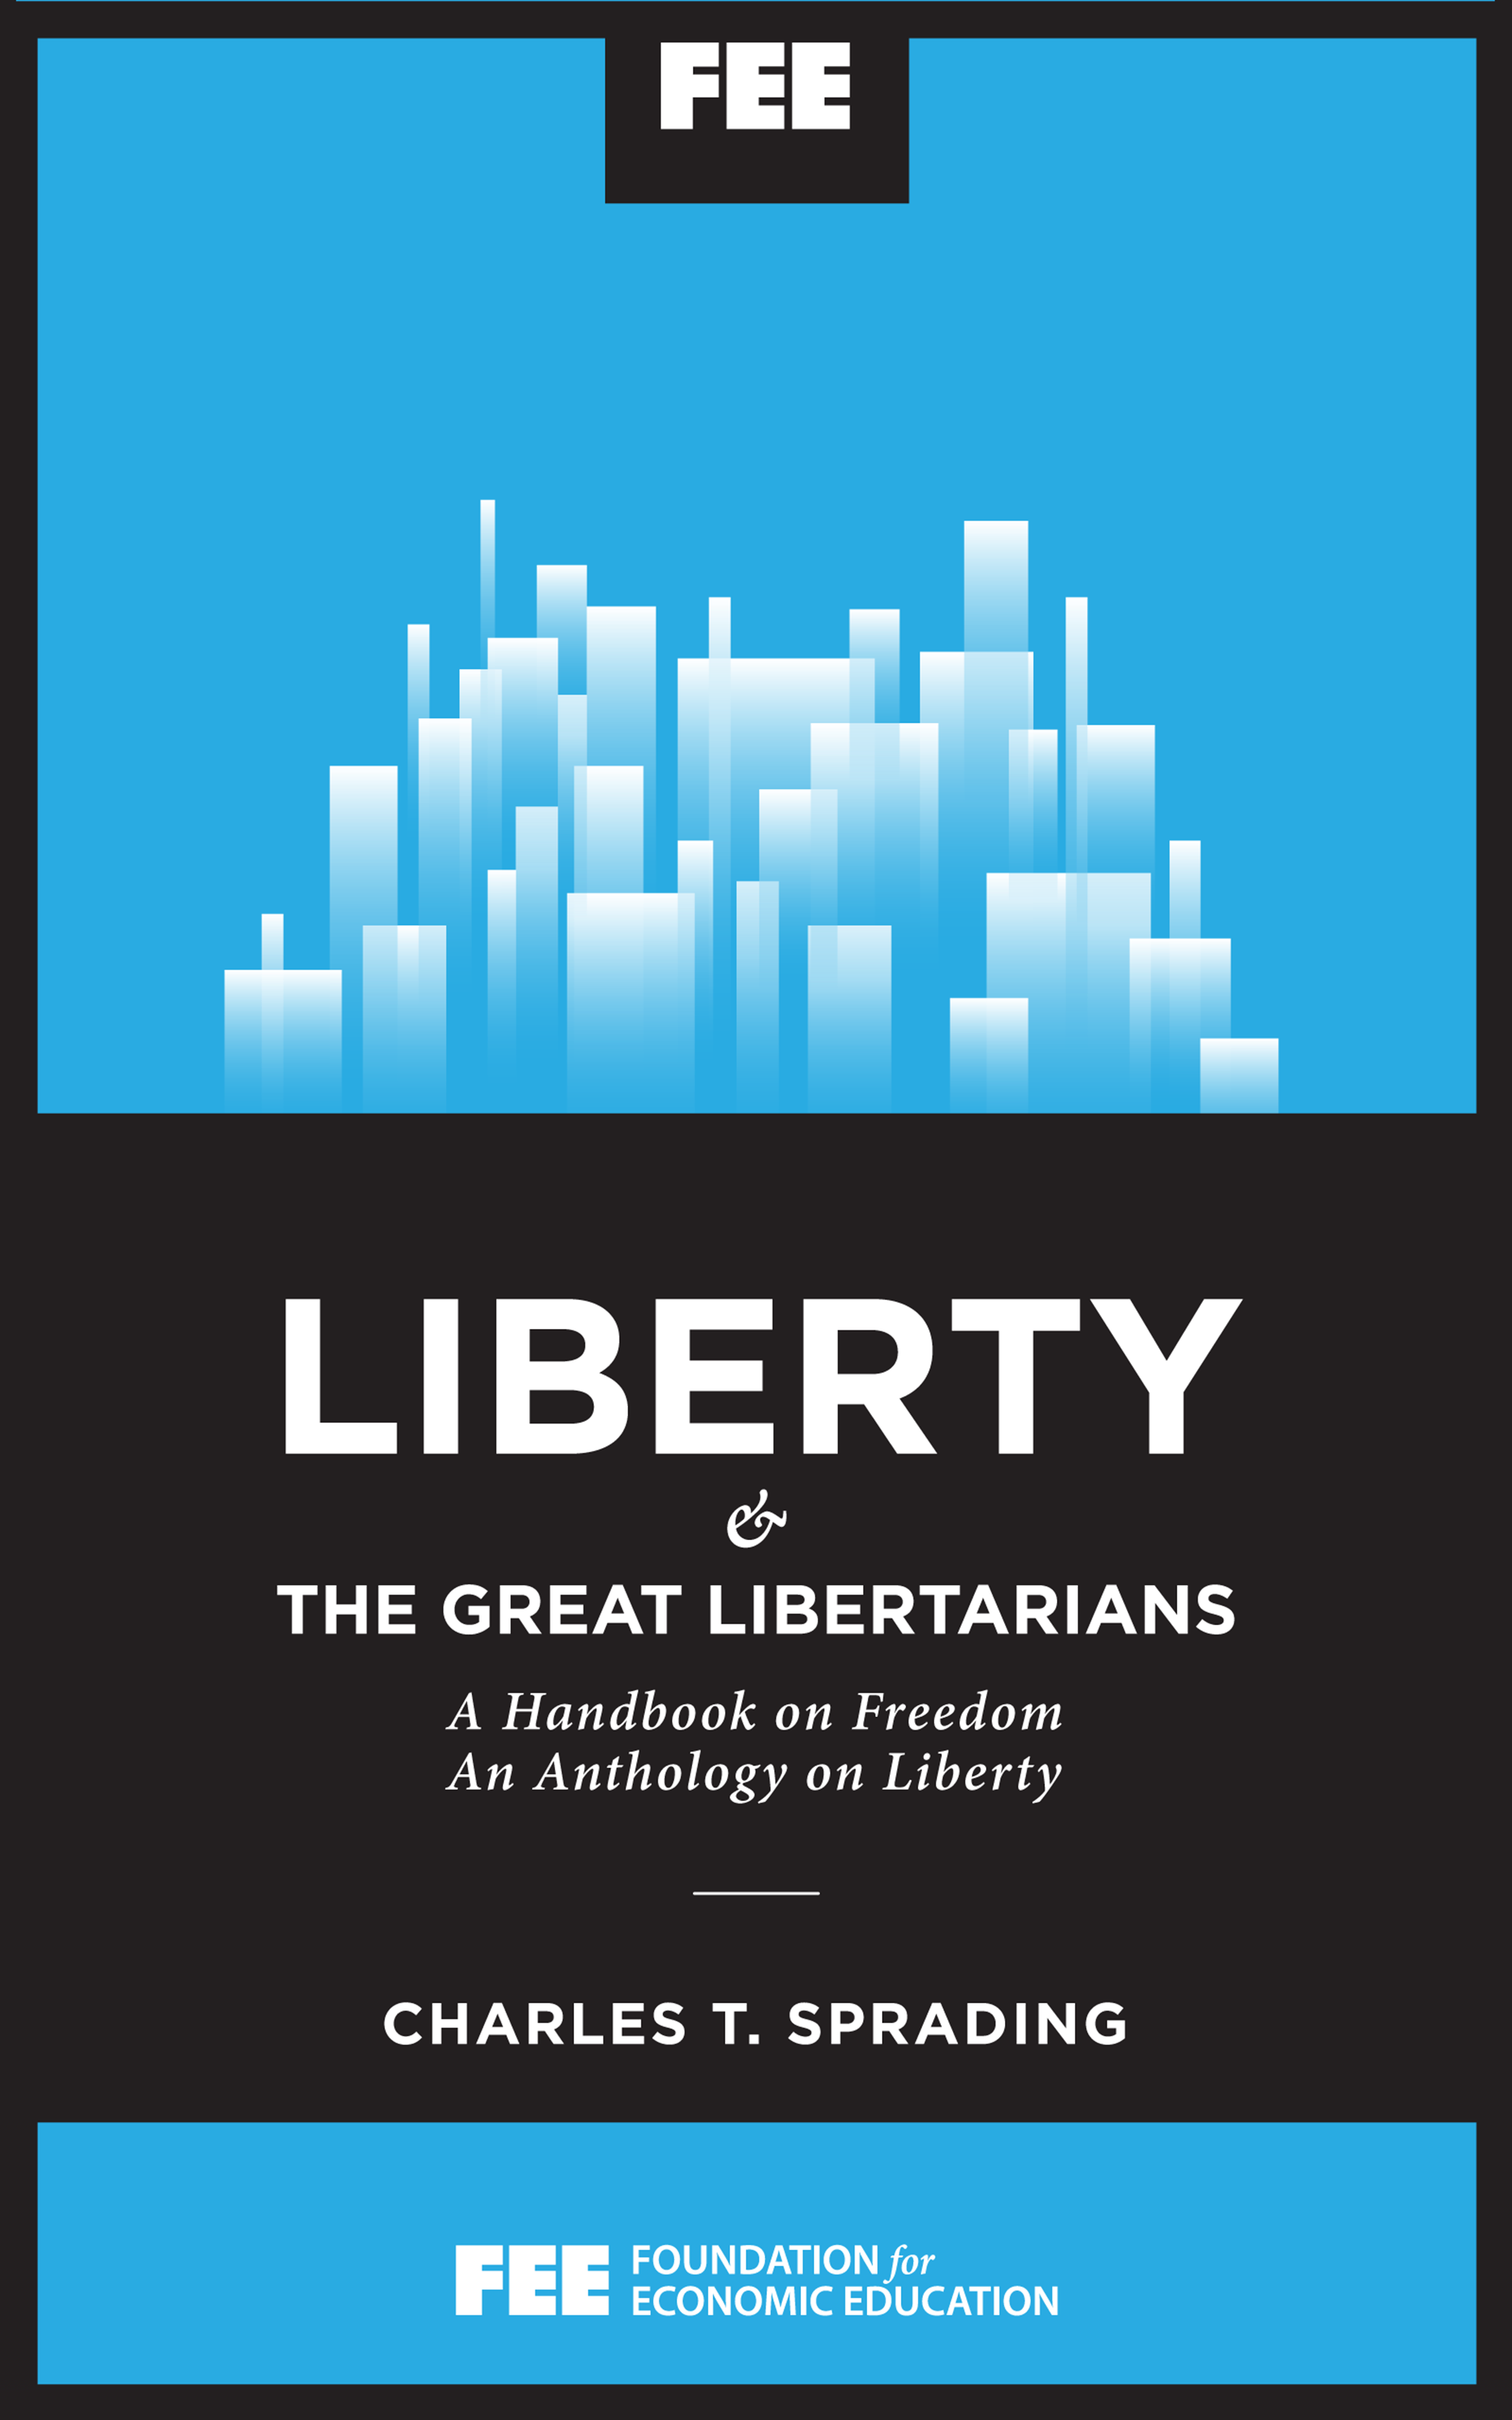 Liberty Pull Apart >> Liberty And The Great Libertarians Foundation For Economic